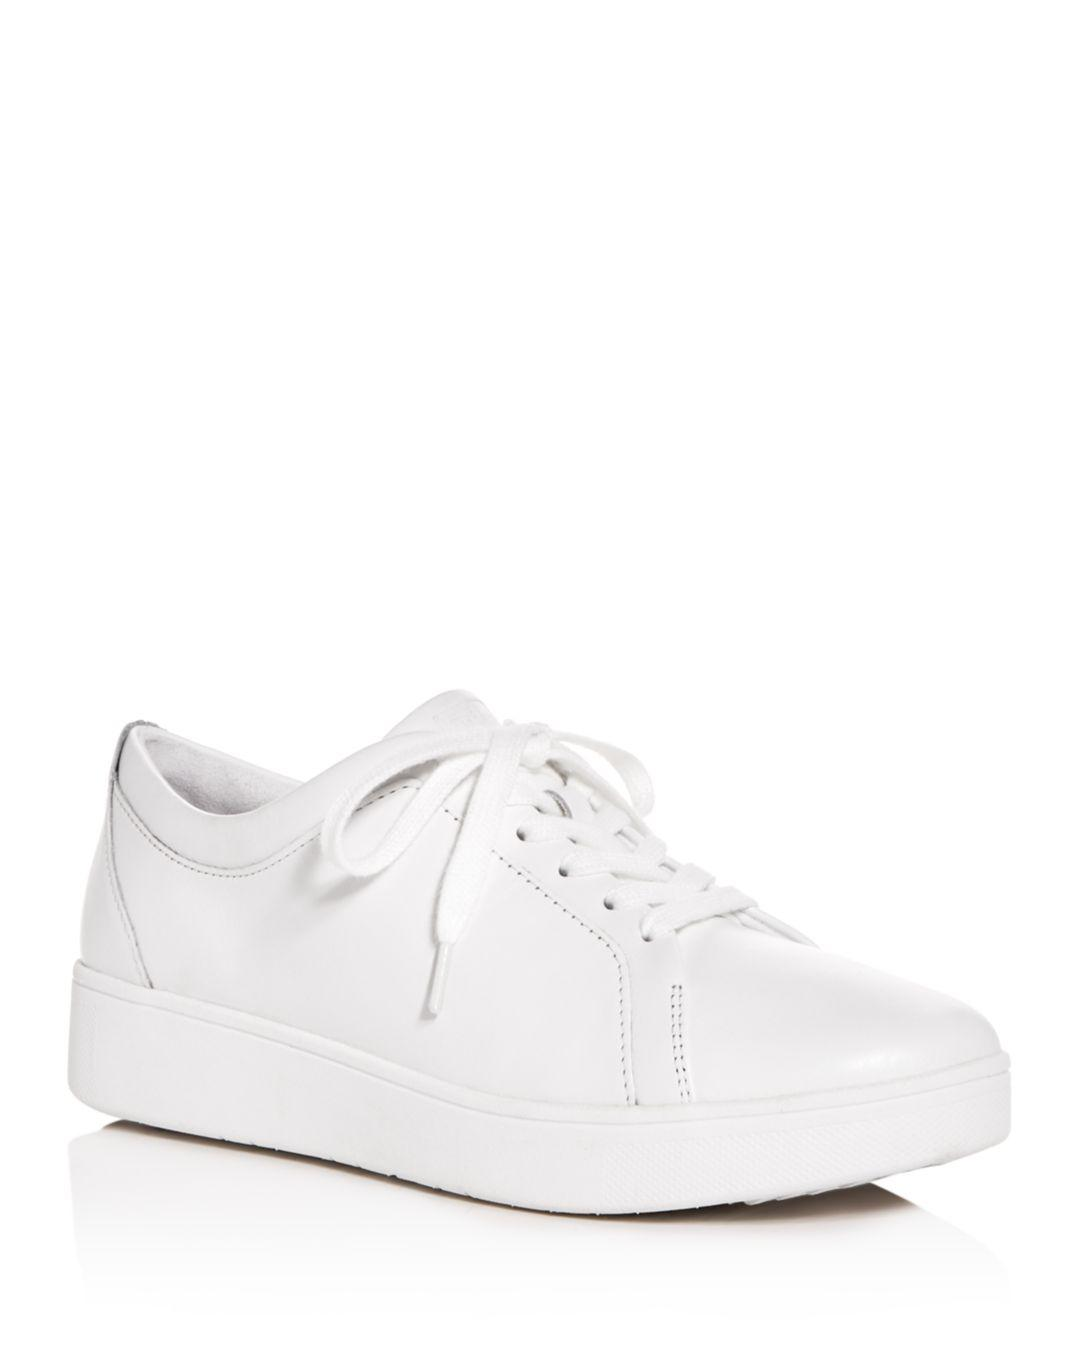 c660cab1d956 Lyst - Fitflop Women s Rally Low-top Platform Sneakers in White